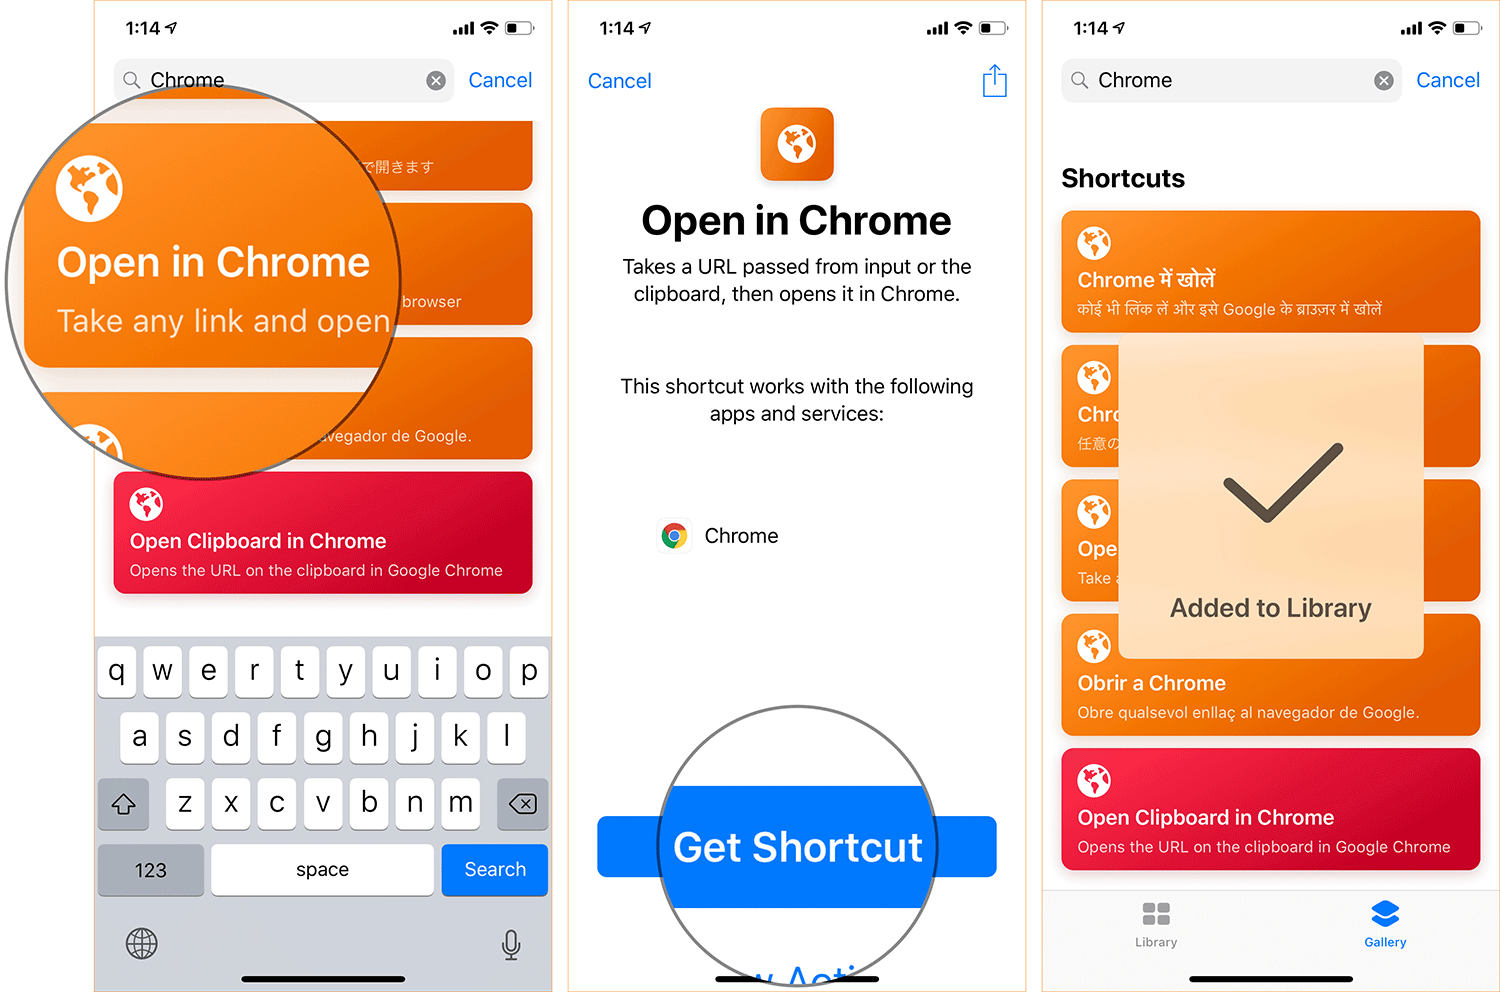 Download Open in Chrome Shortcut on iPhone or iPad